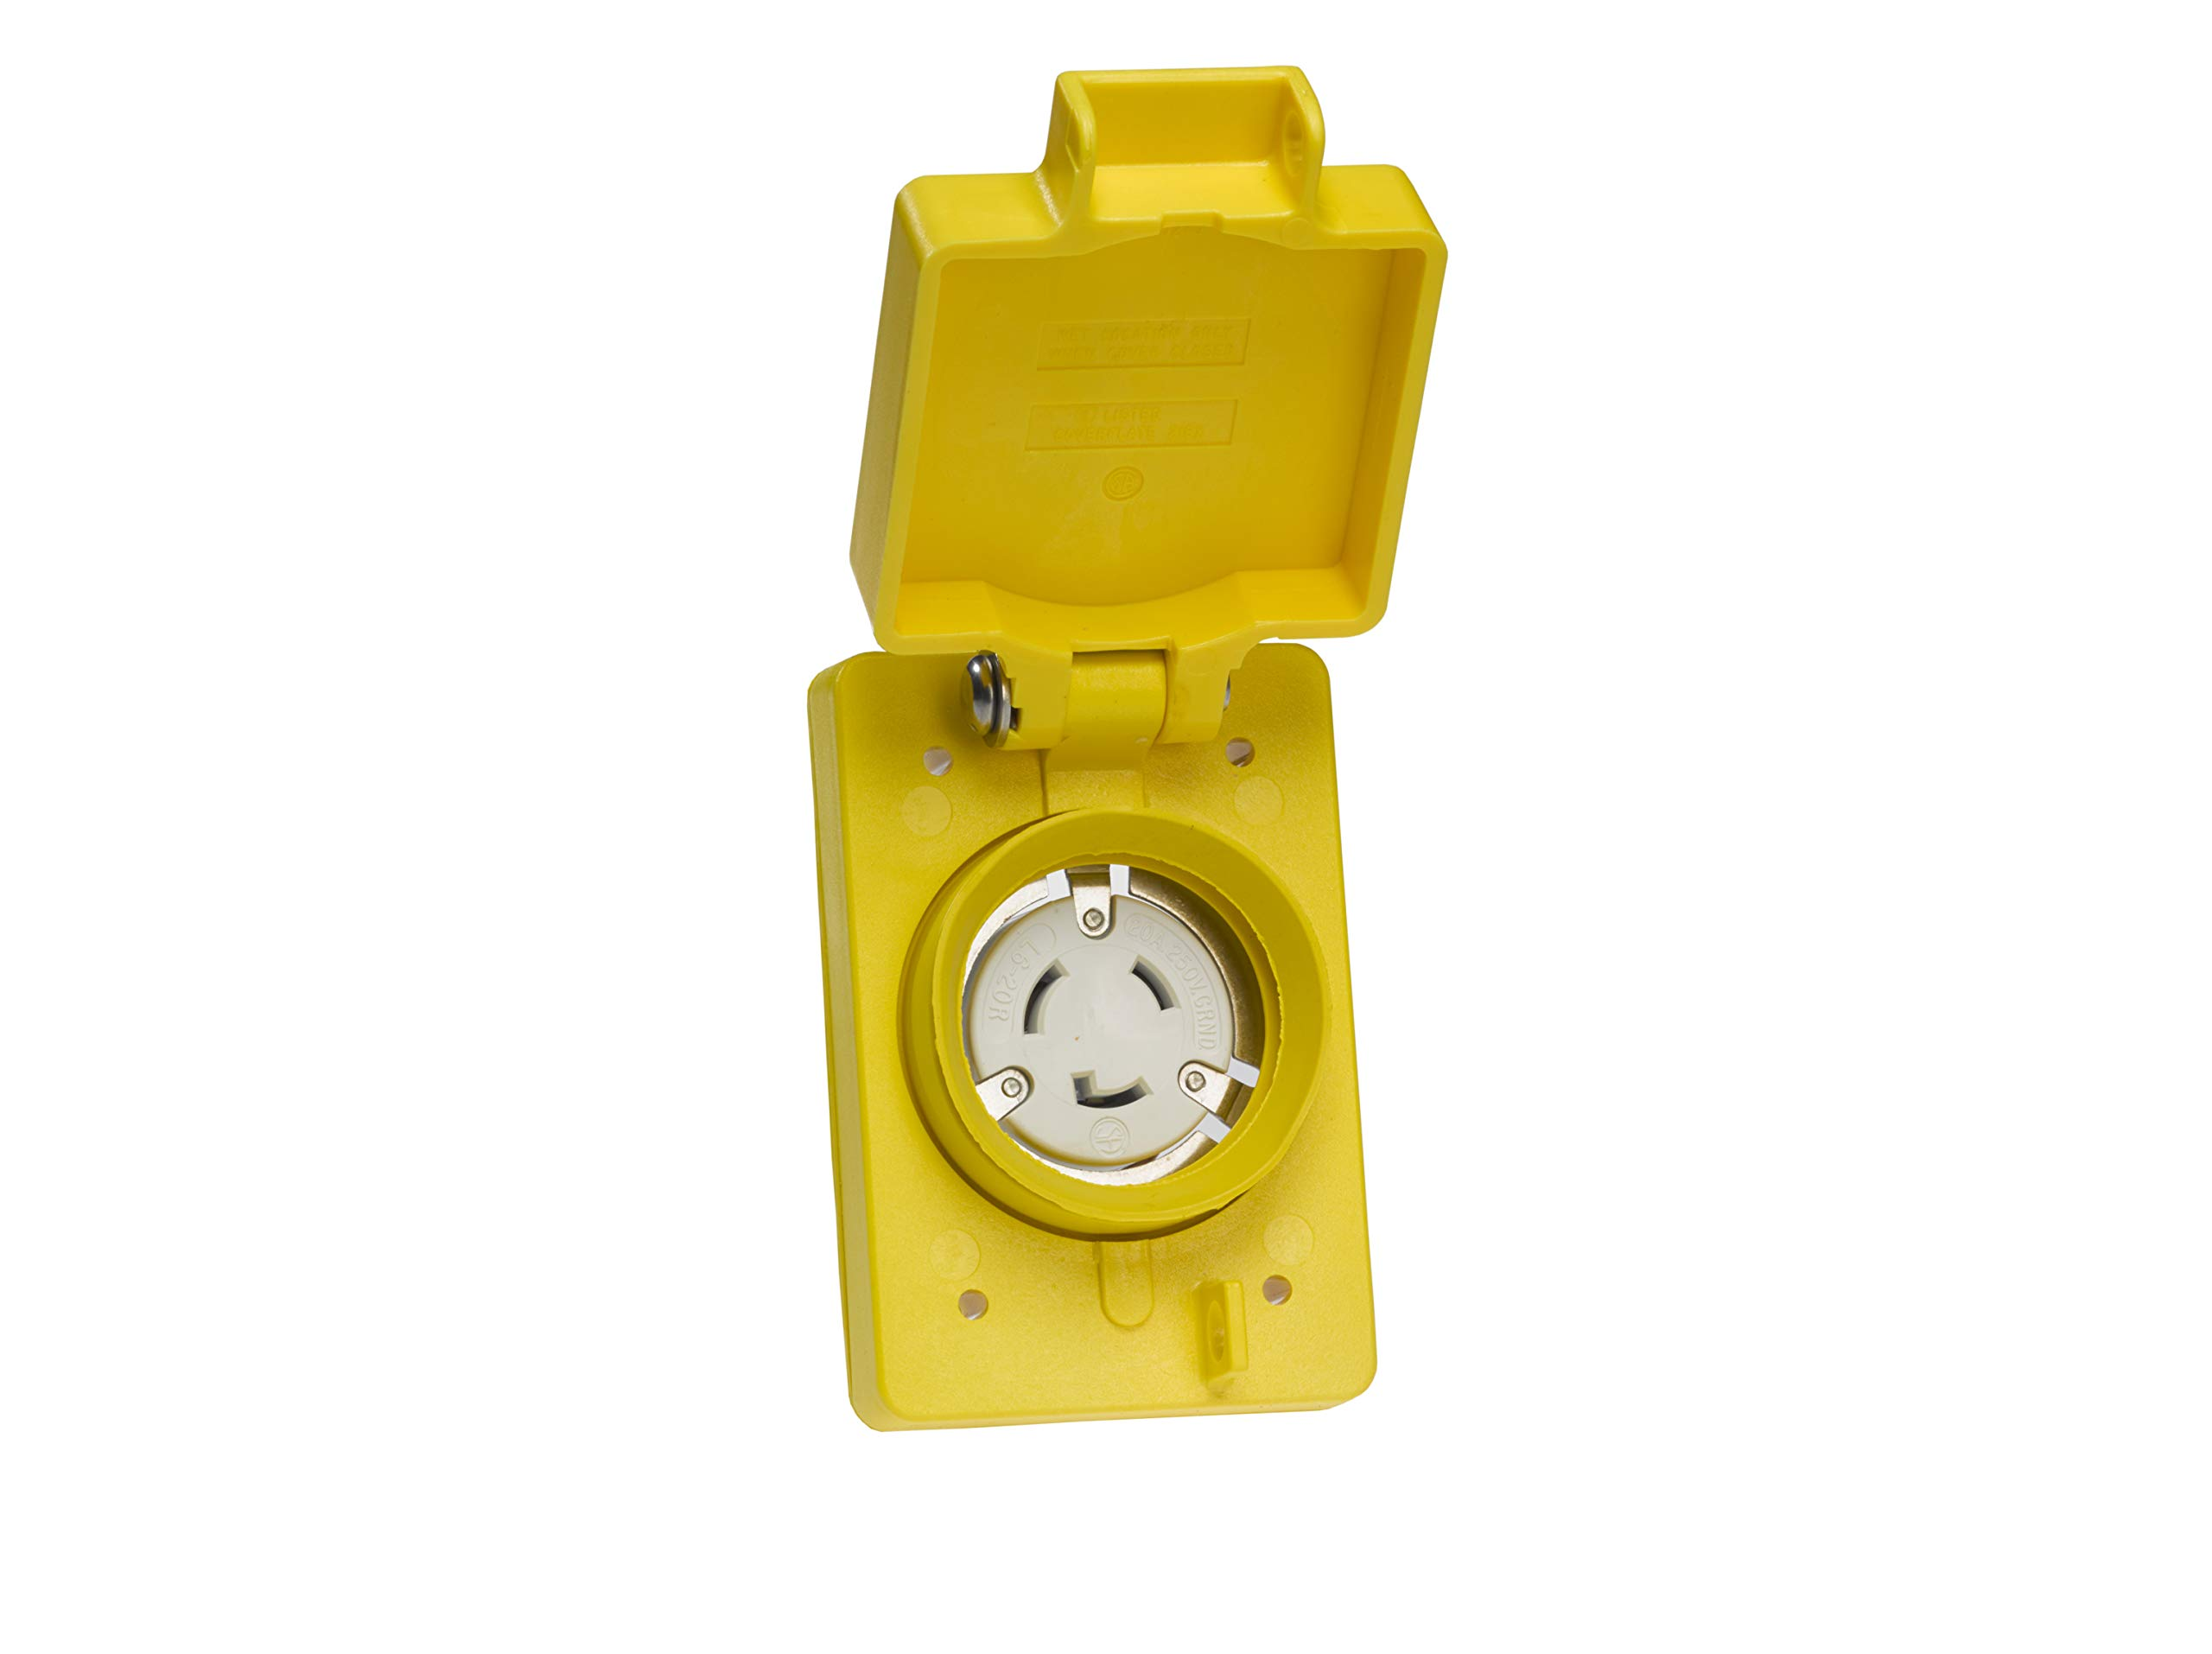 Woodhead 67W48 Watertite Wet Location Locking Blade Receptacle - Yellow, 2Pole/3Wire Single Flip Lid Receptacle with NEMA L6-20 Configuration, 20A/250V by Woodhead (Image #2)